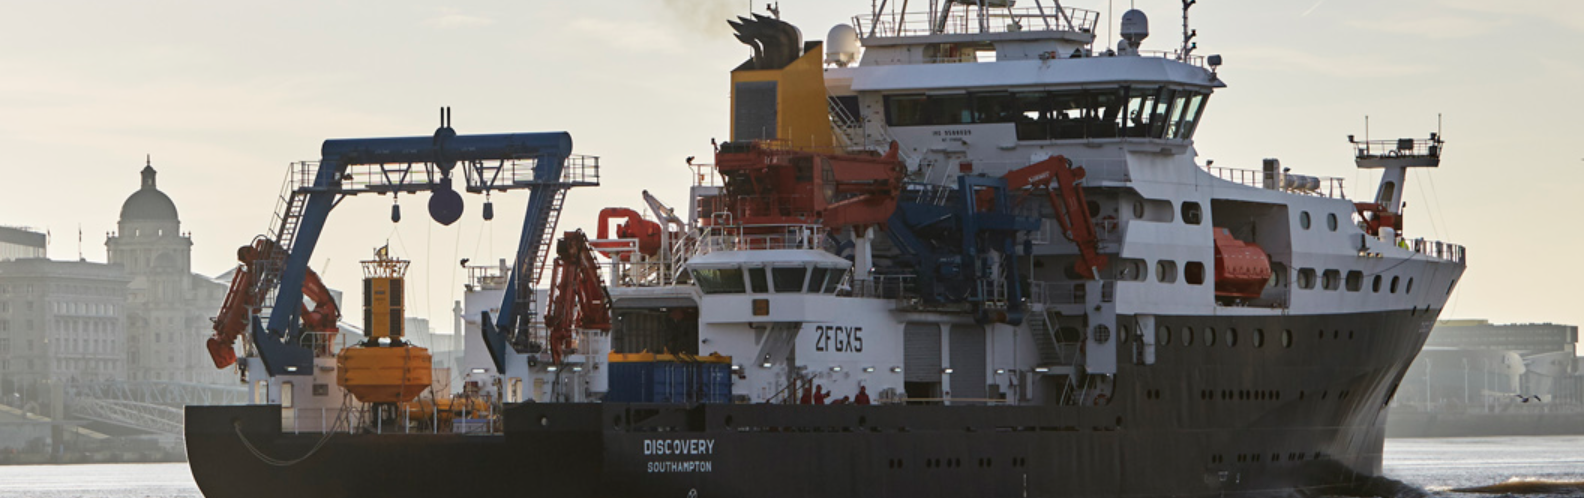 RSS Discovery. Photo by: National Oceanography Centre